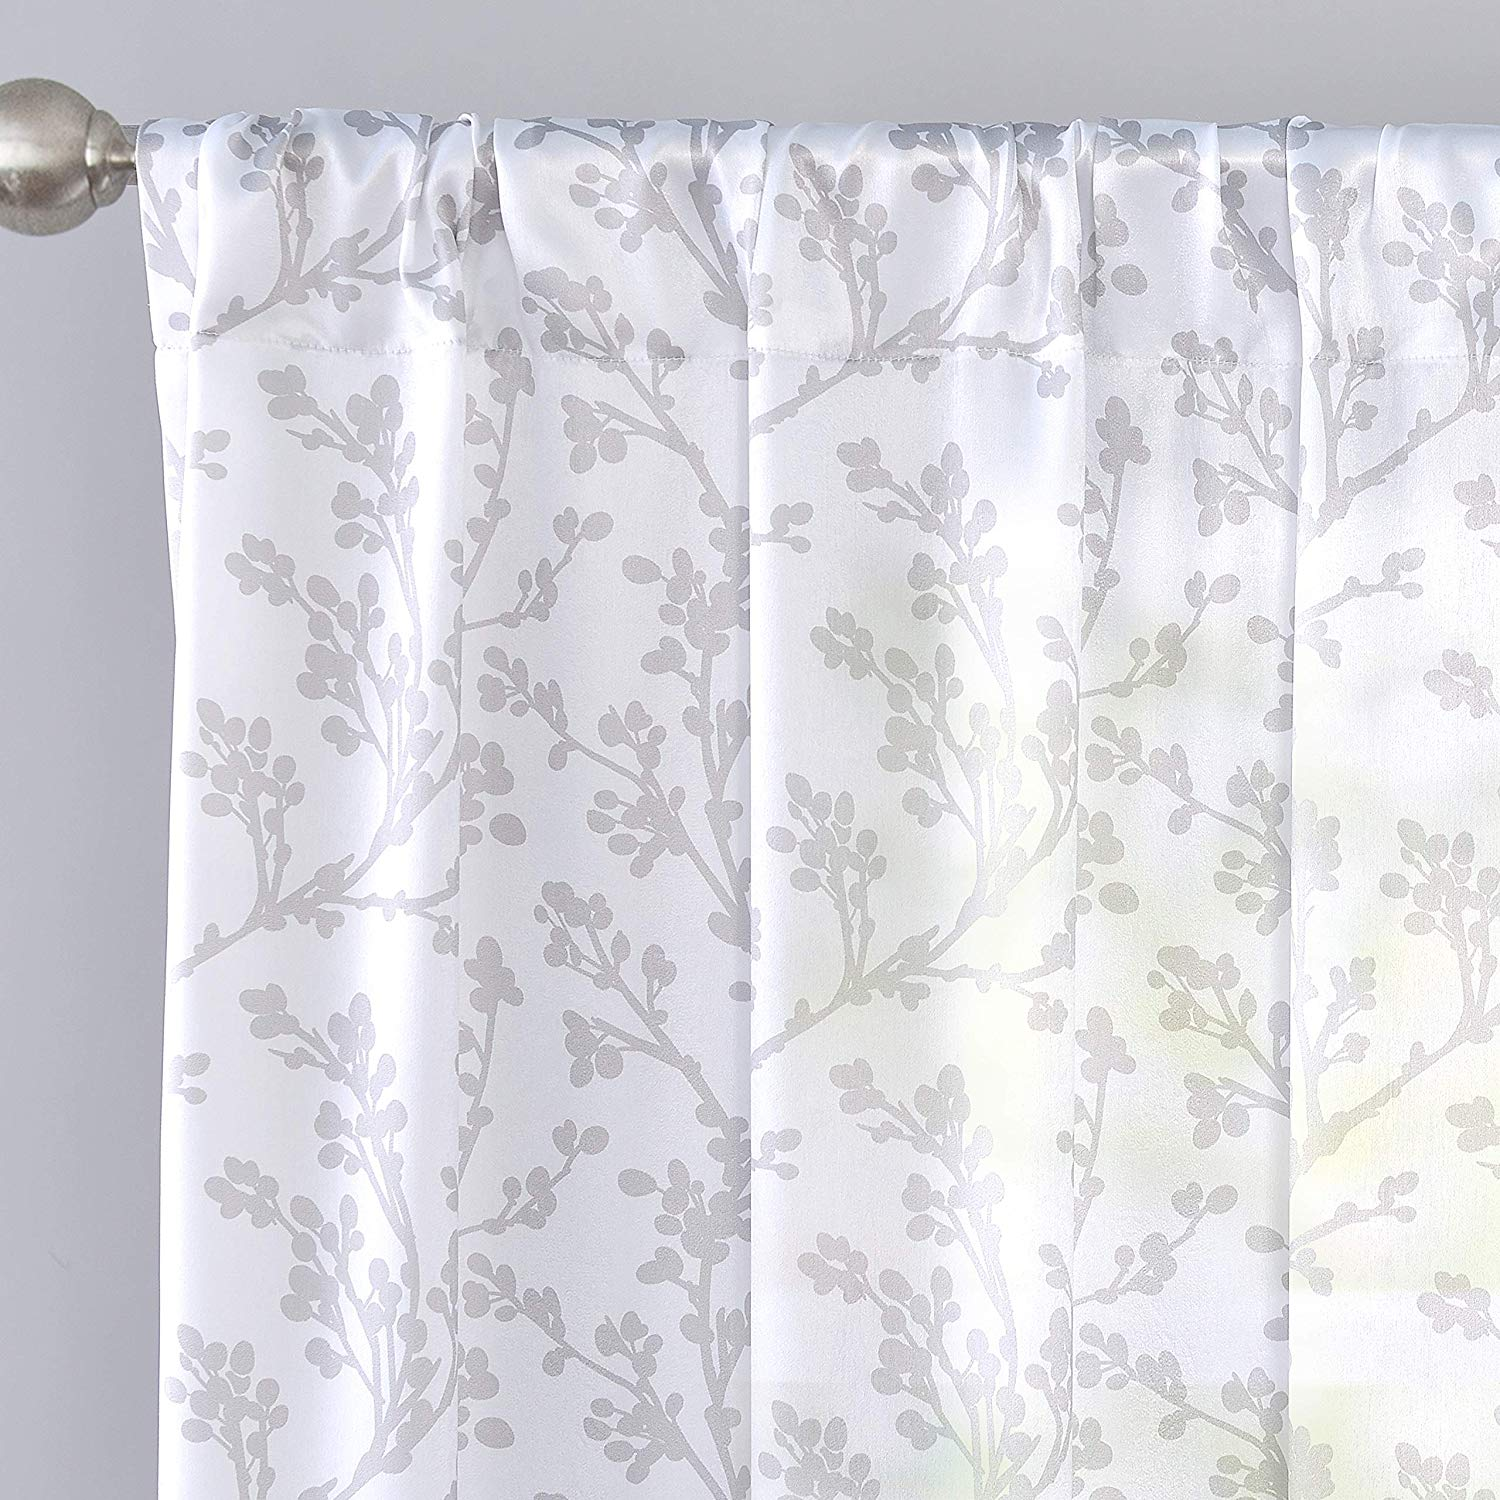 driftaway sarah floral tree branch pattern sheer voile window curtain rod pocket 2 panels 52 inch by 84 inch gray